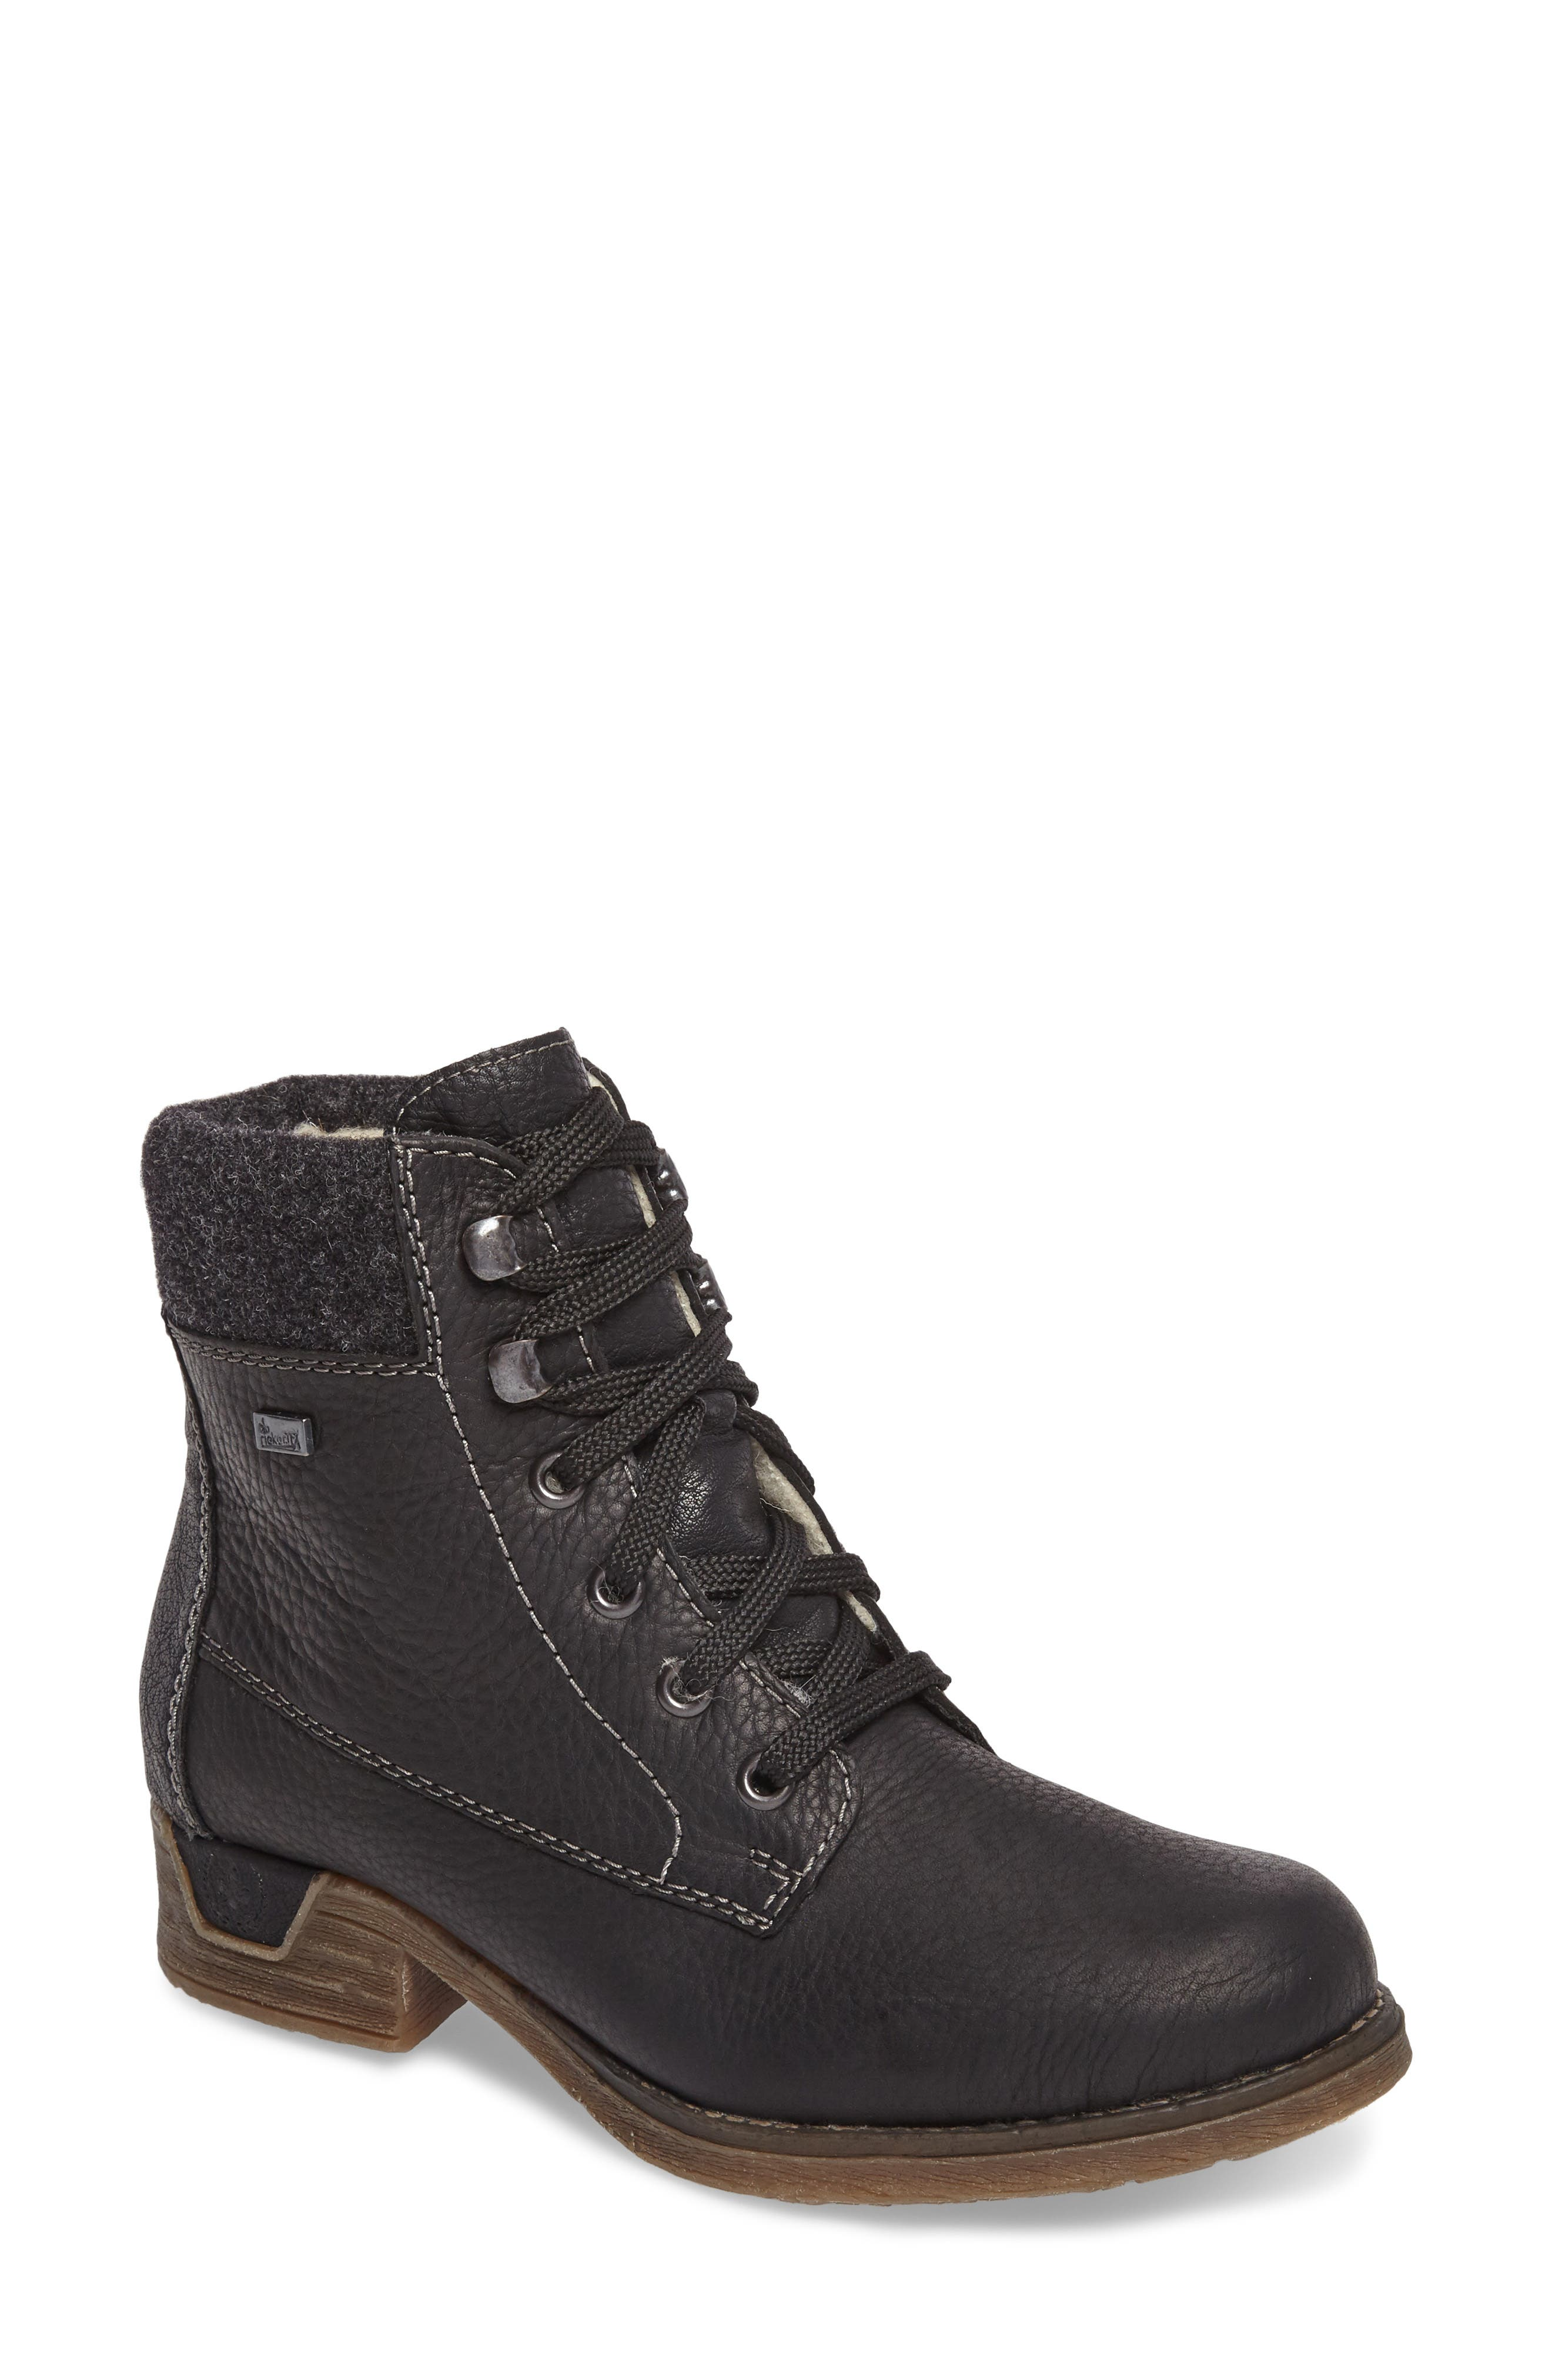 Fee 02 Lace-Up Boot,                         Main,                         color, SCHWARZ ANTRACHITE LEATHER